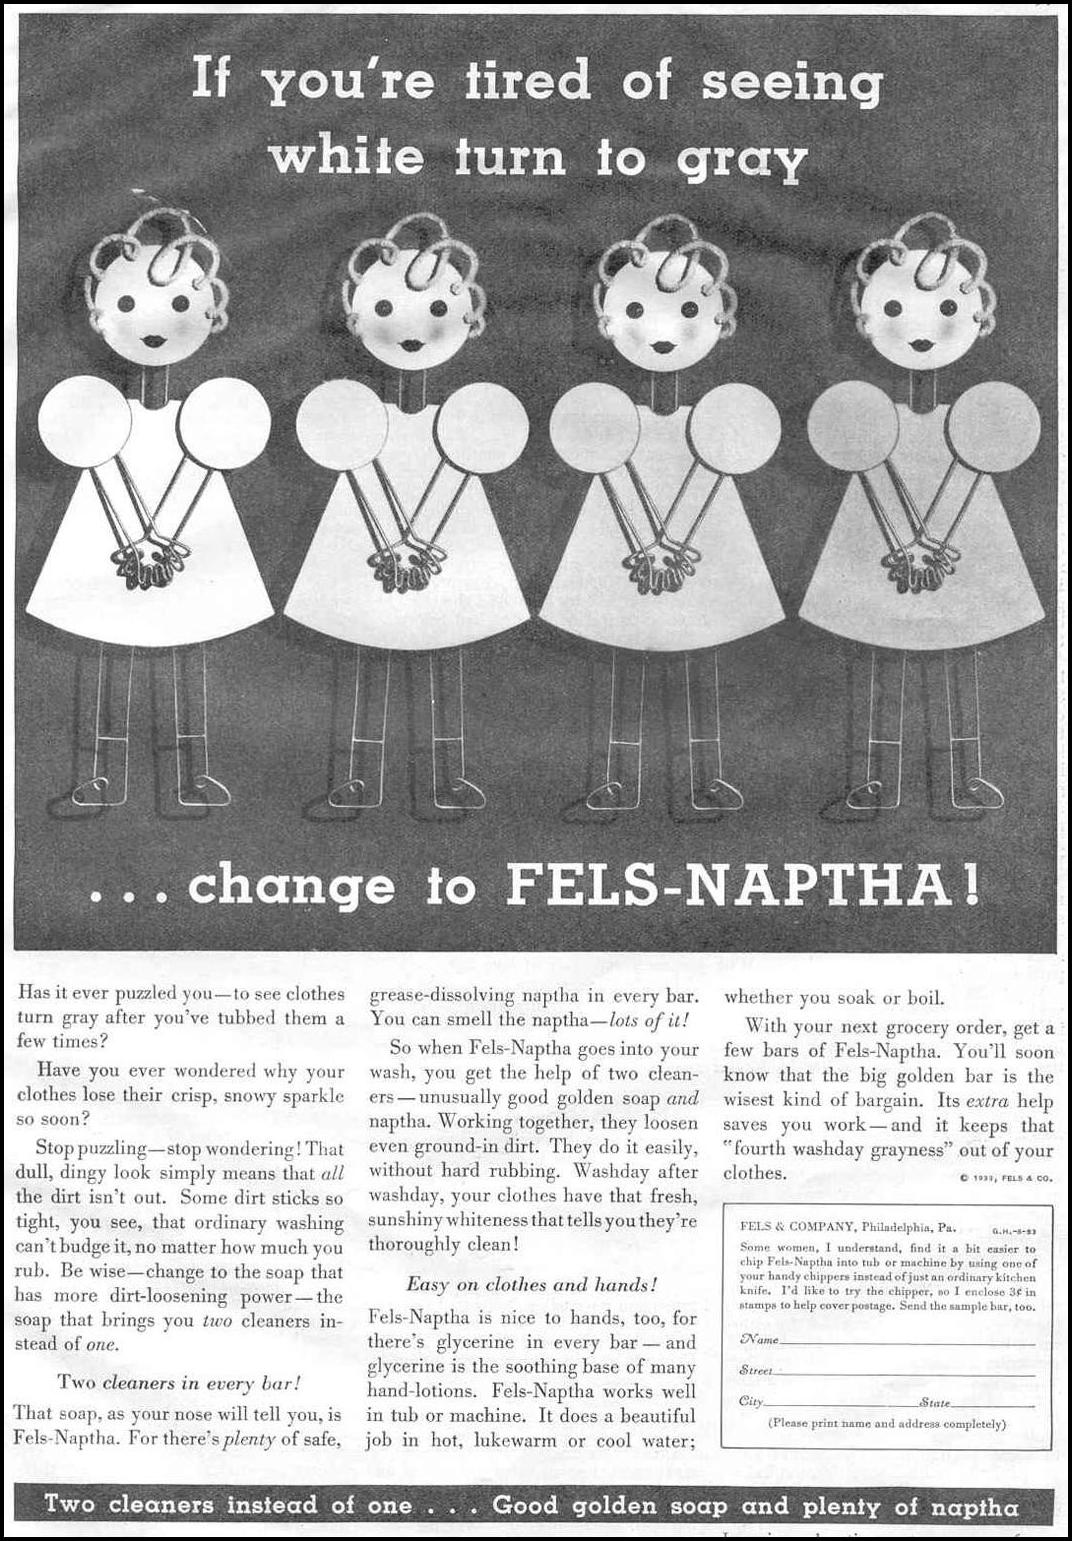 FELS-NAPTHA SOAP GOOD HOUSEKEEPING 06/01/1933 p. 97